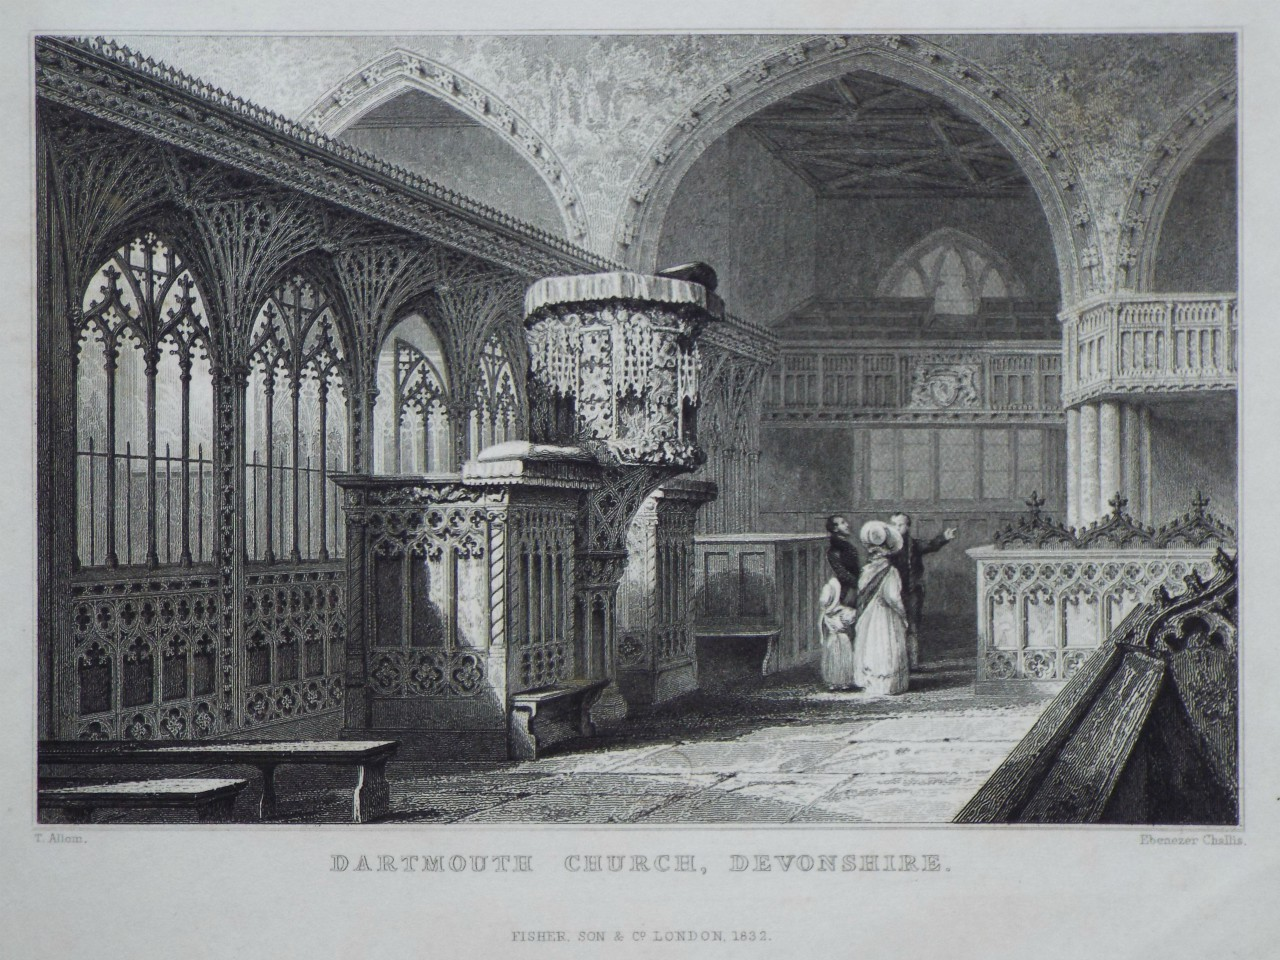 Print - Dartmouth Church, Devonshire. - Challis